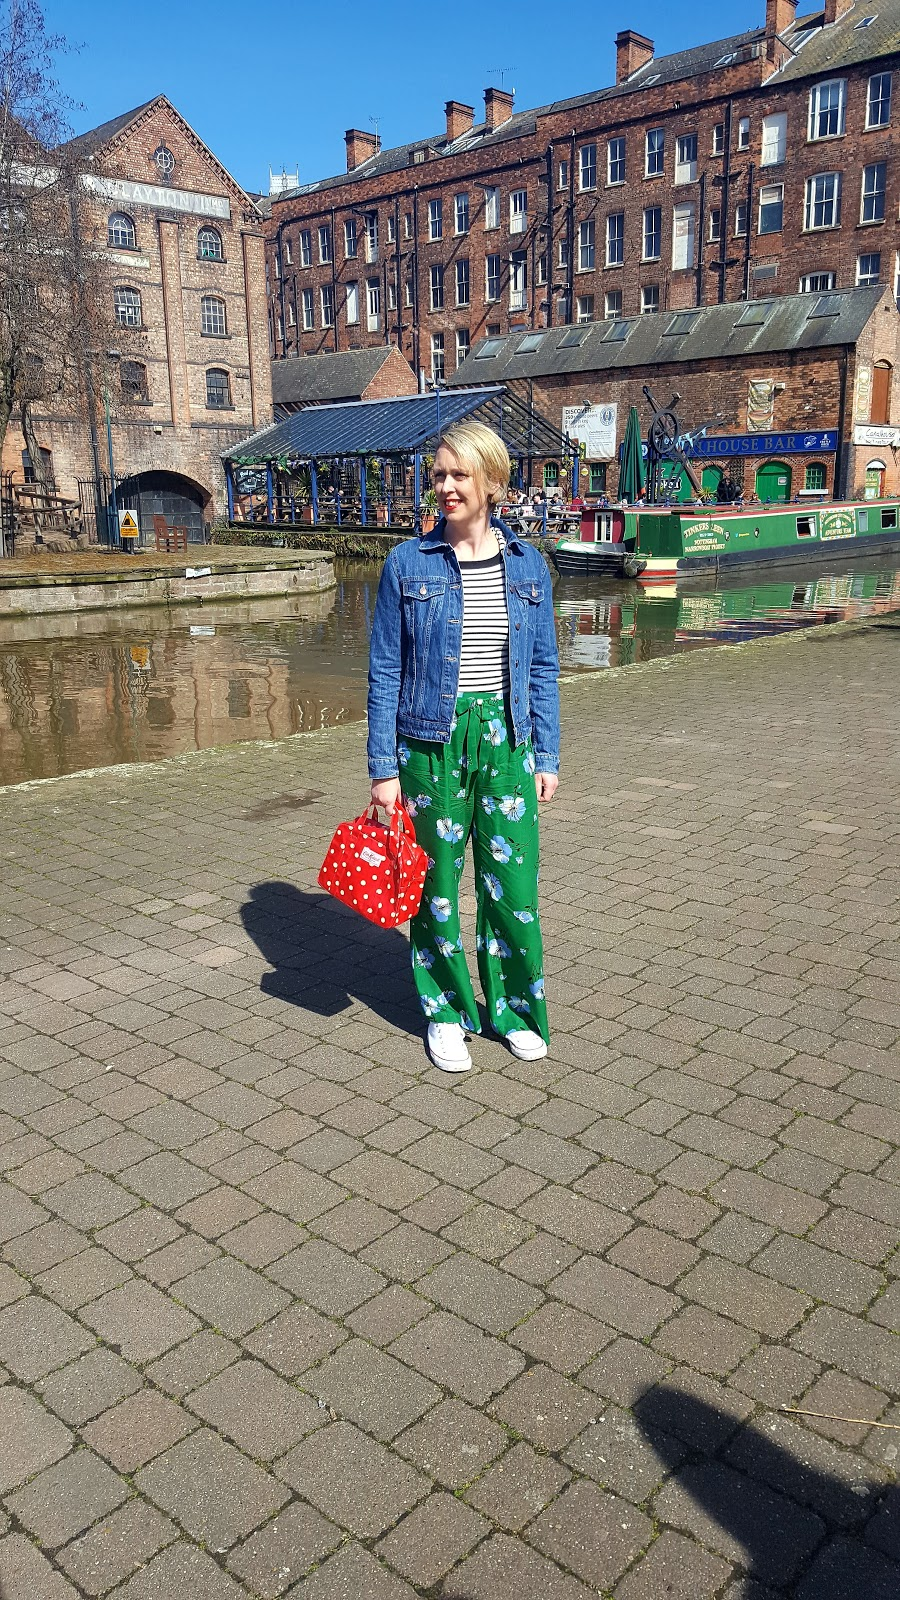 Outfit Of The Day: Suns Out: Mums Out